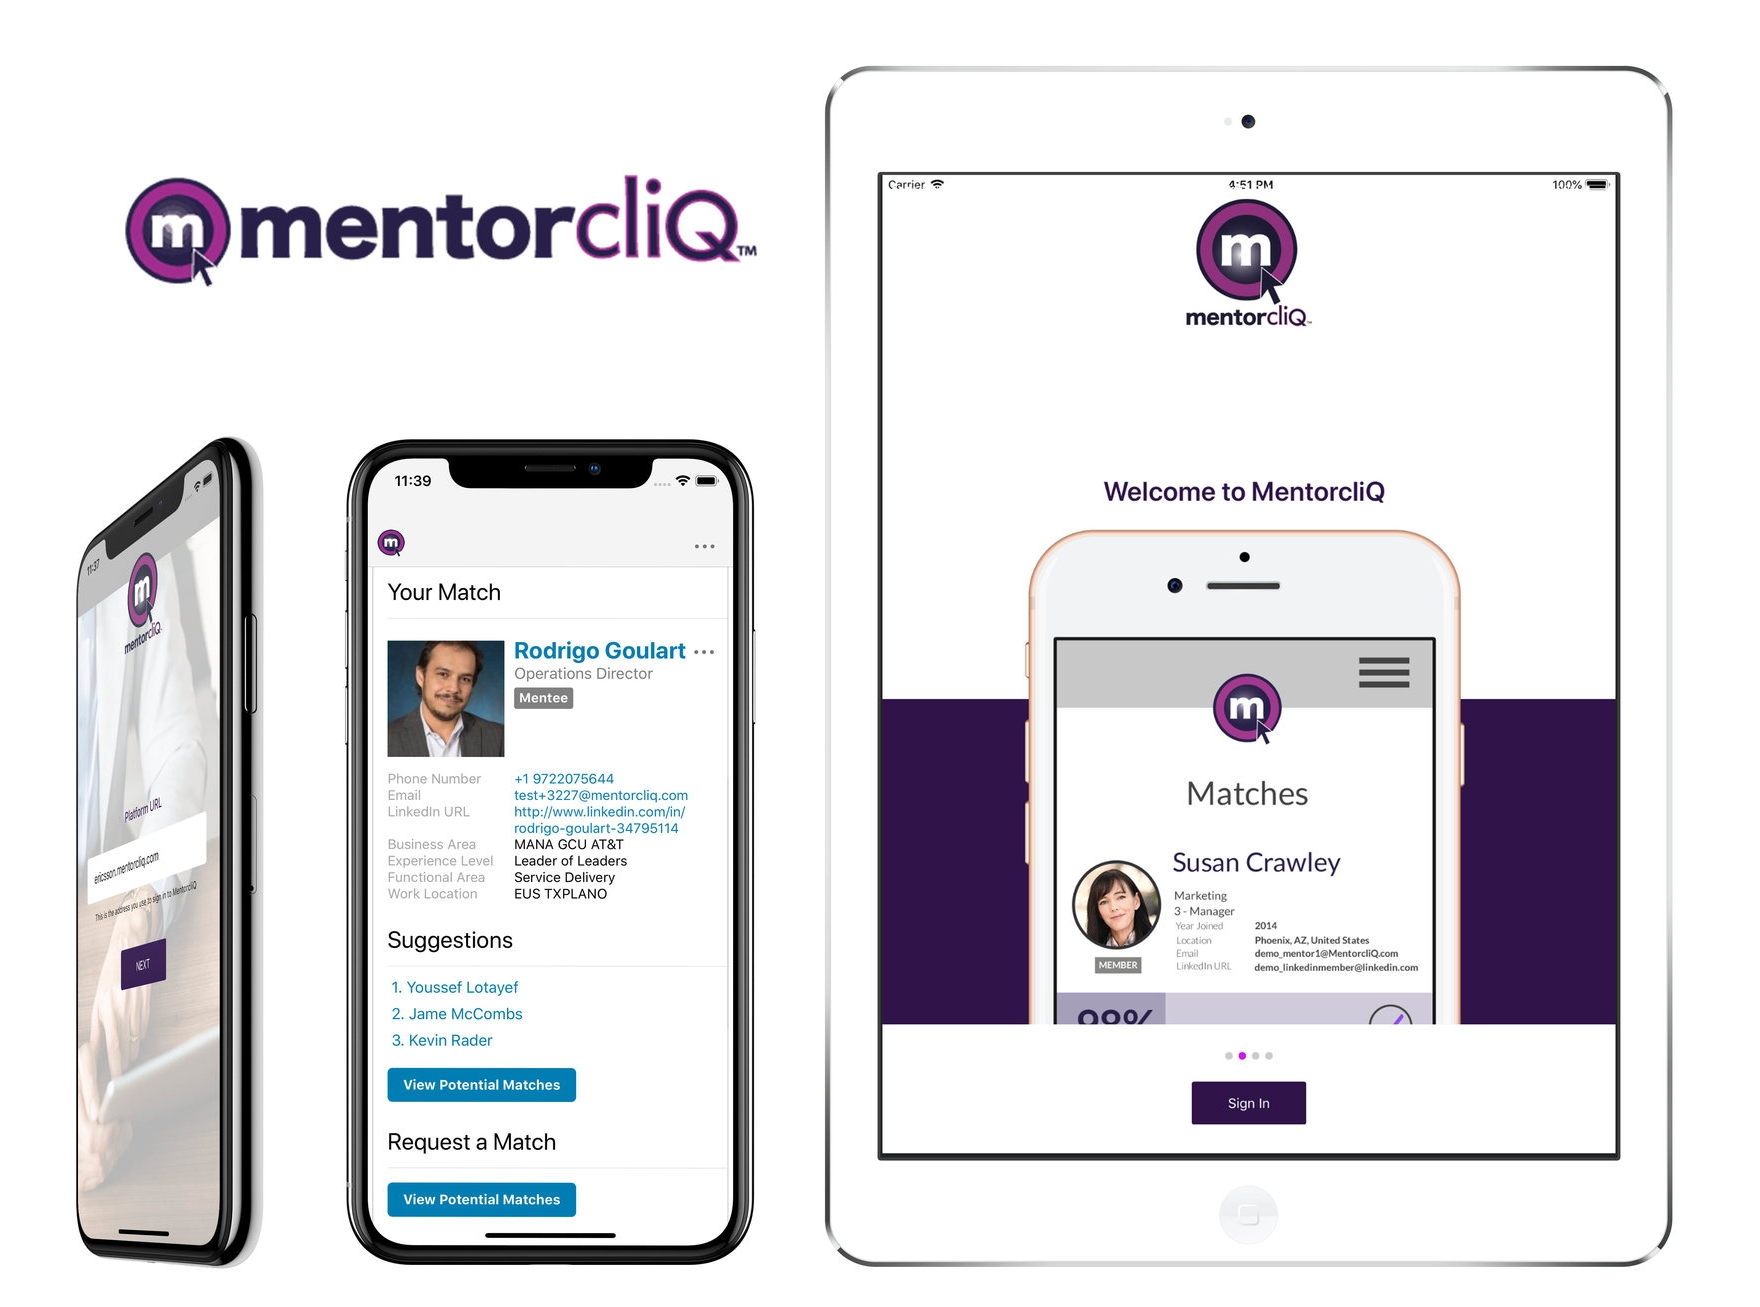 MentorcliQ    MentorcliQ provides a full-featured mentoring software platform for recruiting, enrolling, matching, managing, and measuring participants in mentoring and other employee development programs.  React-native was used for the mobile application.